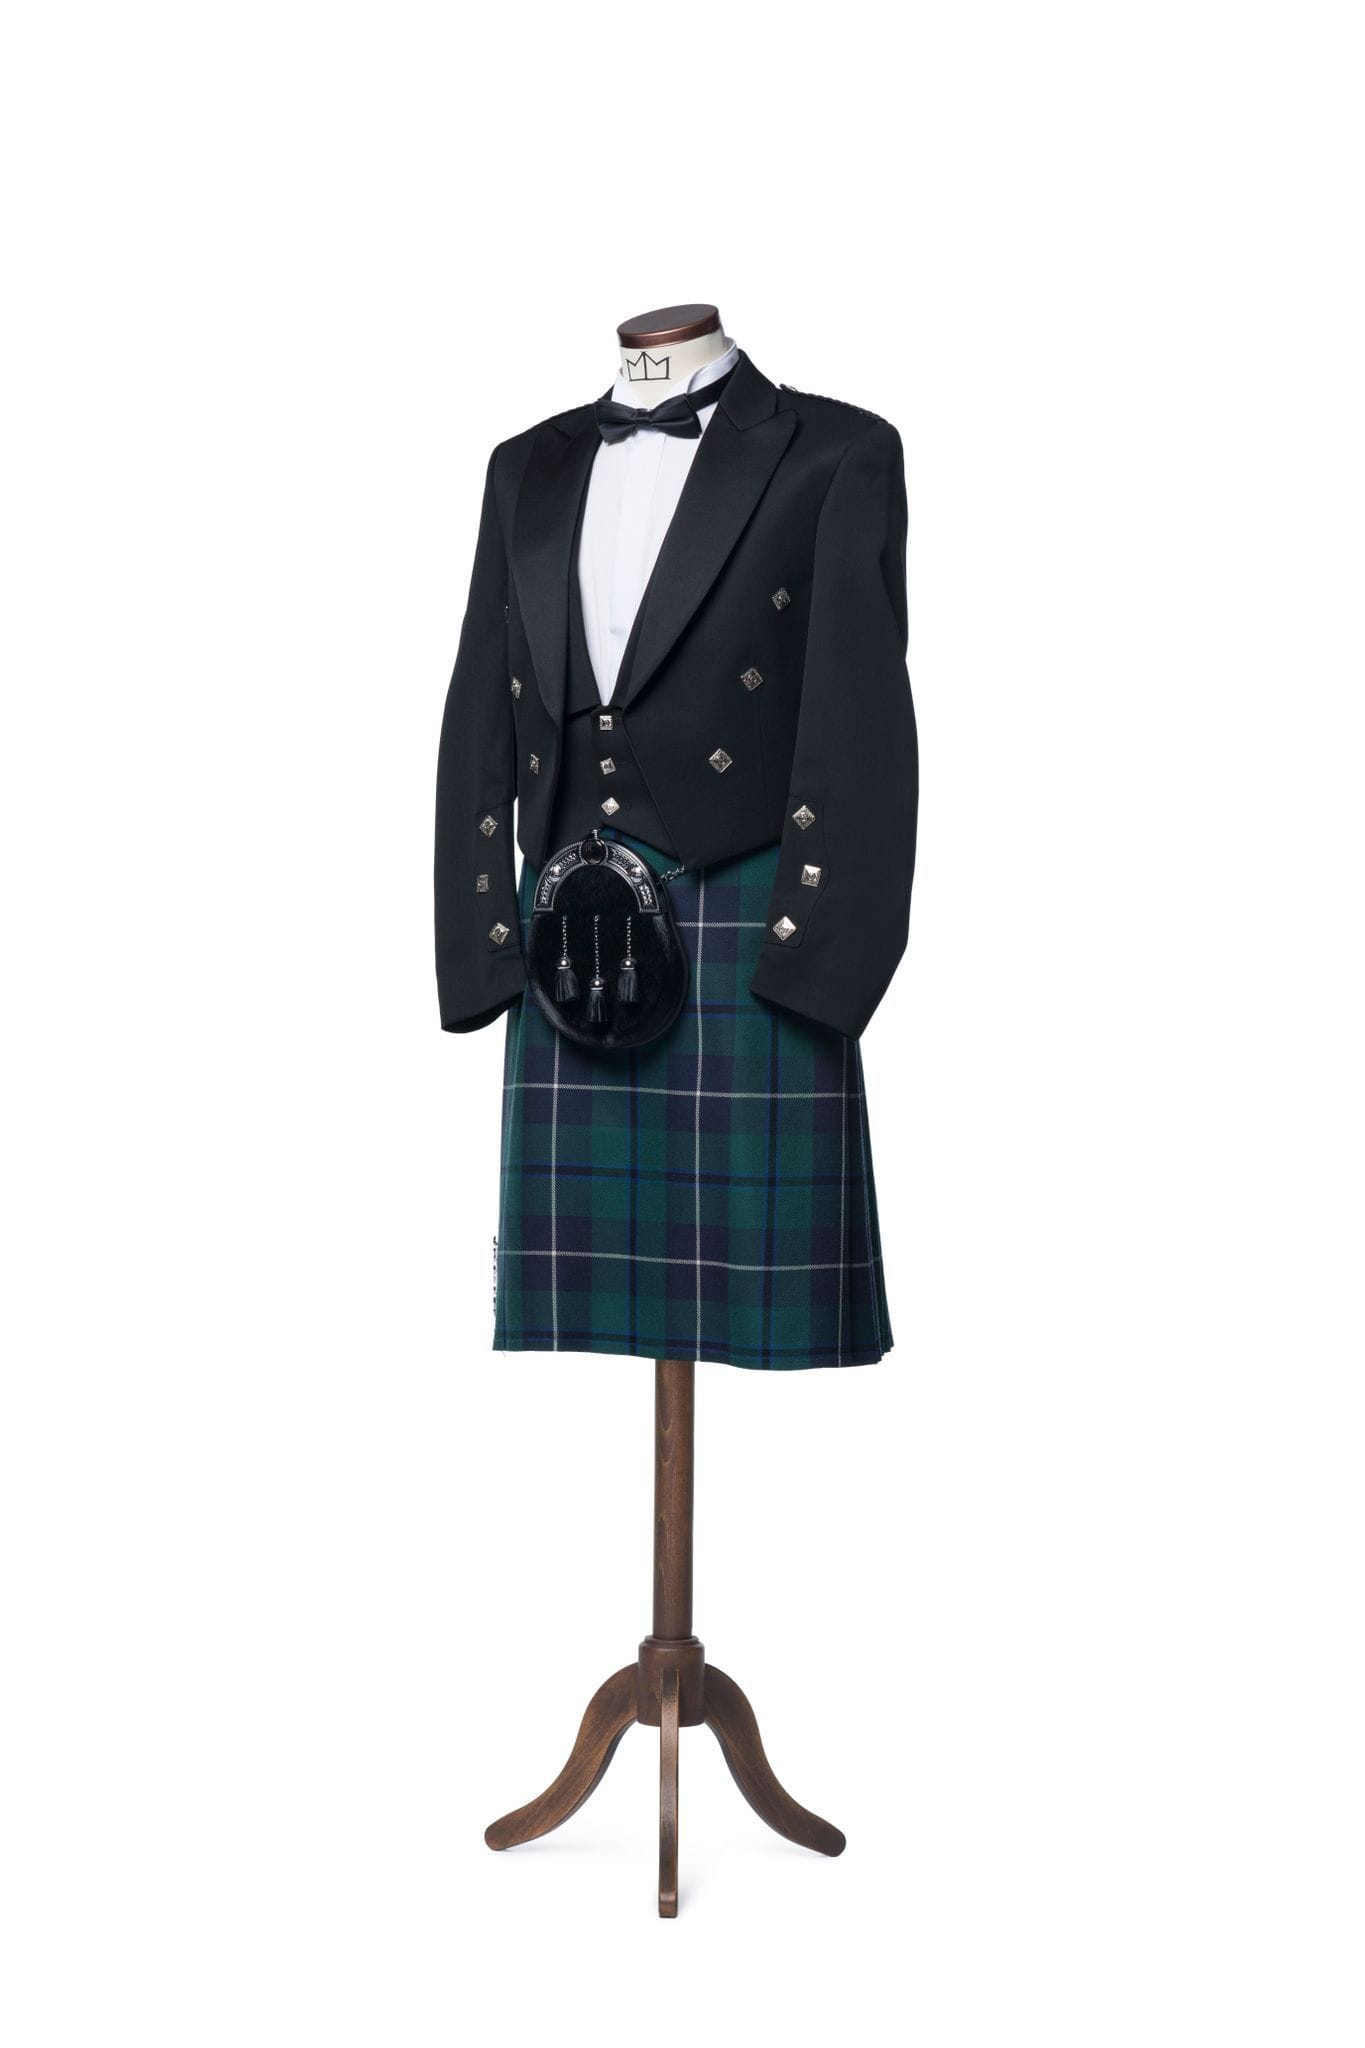 macgregorandmacduff Kilt Outfit Prince Charlie Jacket & Vest Package - Choose Your Tartan